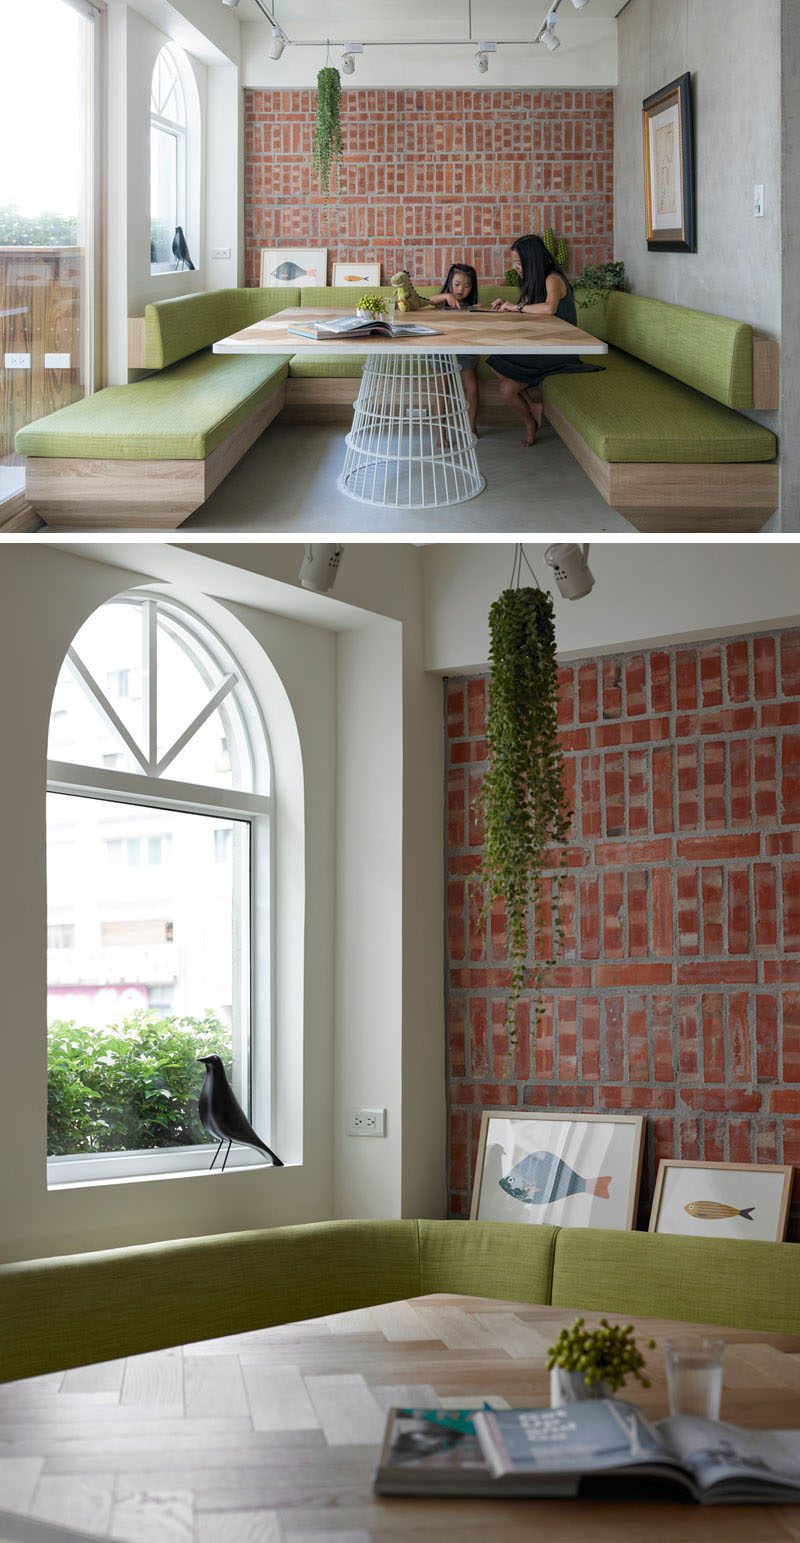 Dining Room Idea - Create A Built-In Dining Nook // Light wood and soft green cushions soften up the brick feature wall, and make this dining area a calm place to spend time eating or gathering around with friends and family. #DiningNook #BuiltInDiningNook #BanquetteSeating #DiningRoom